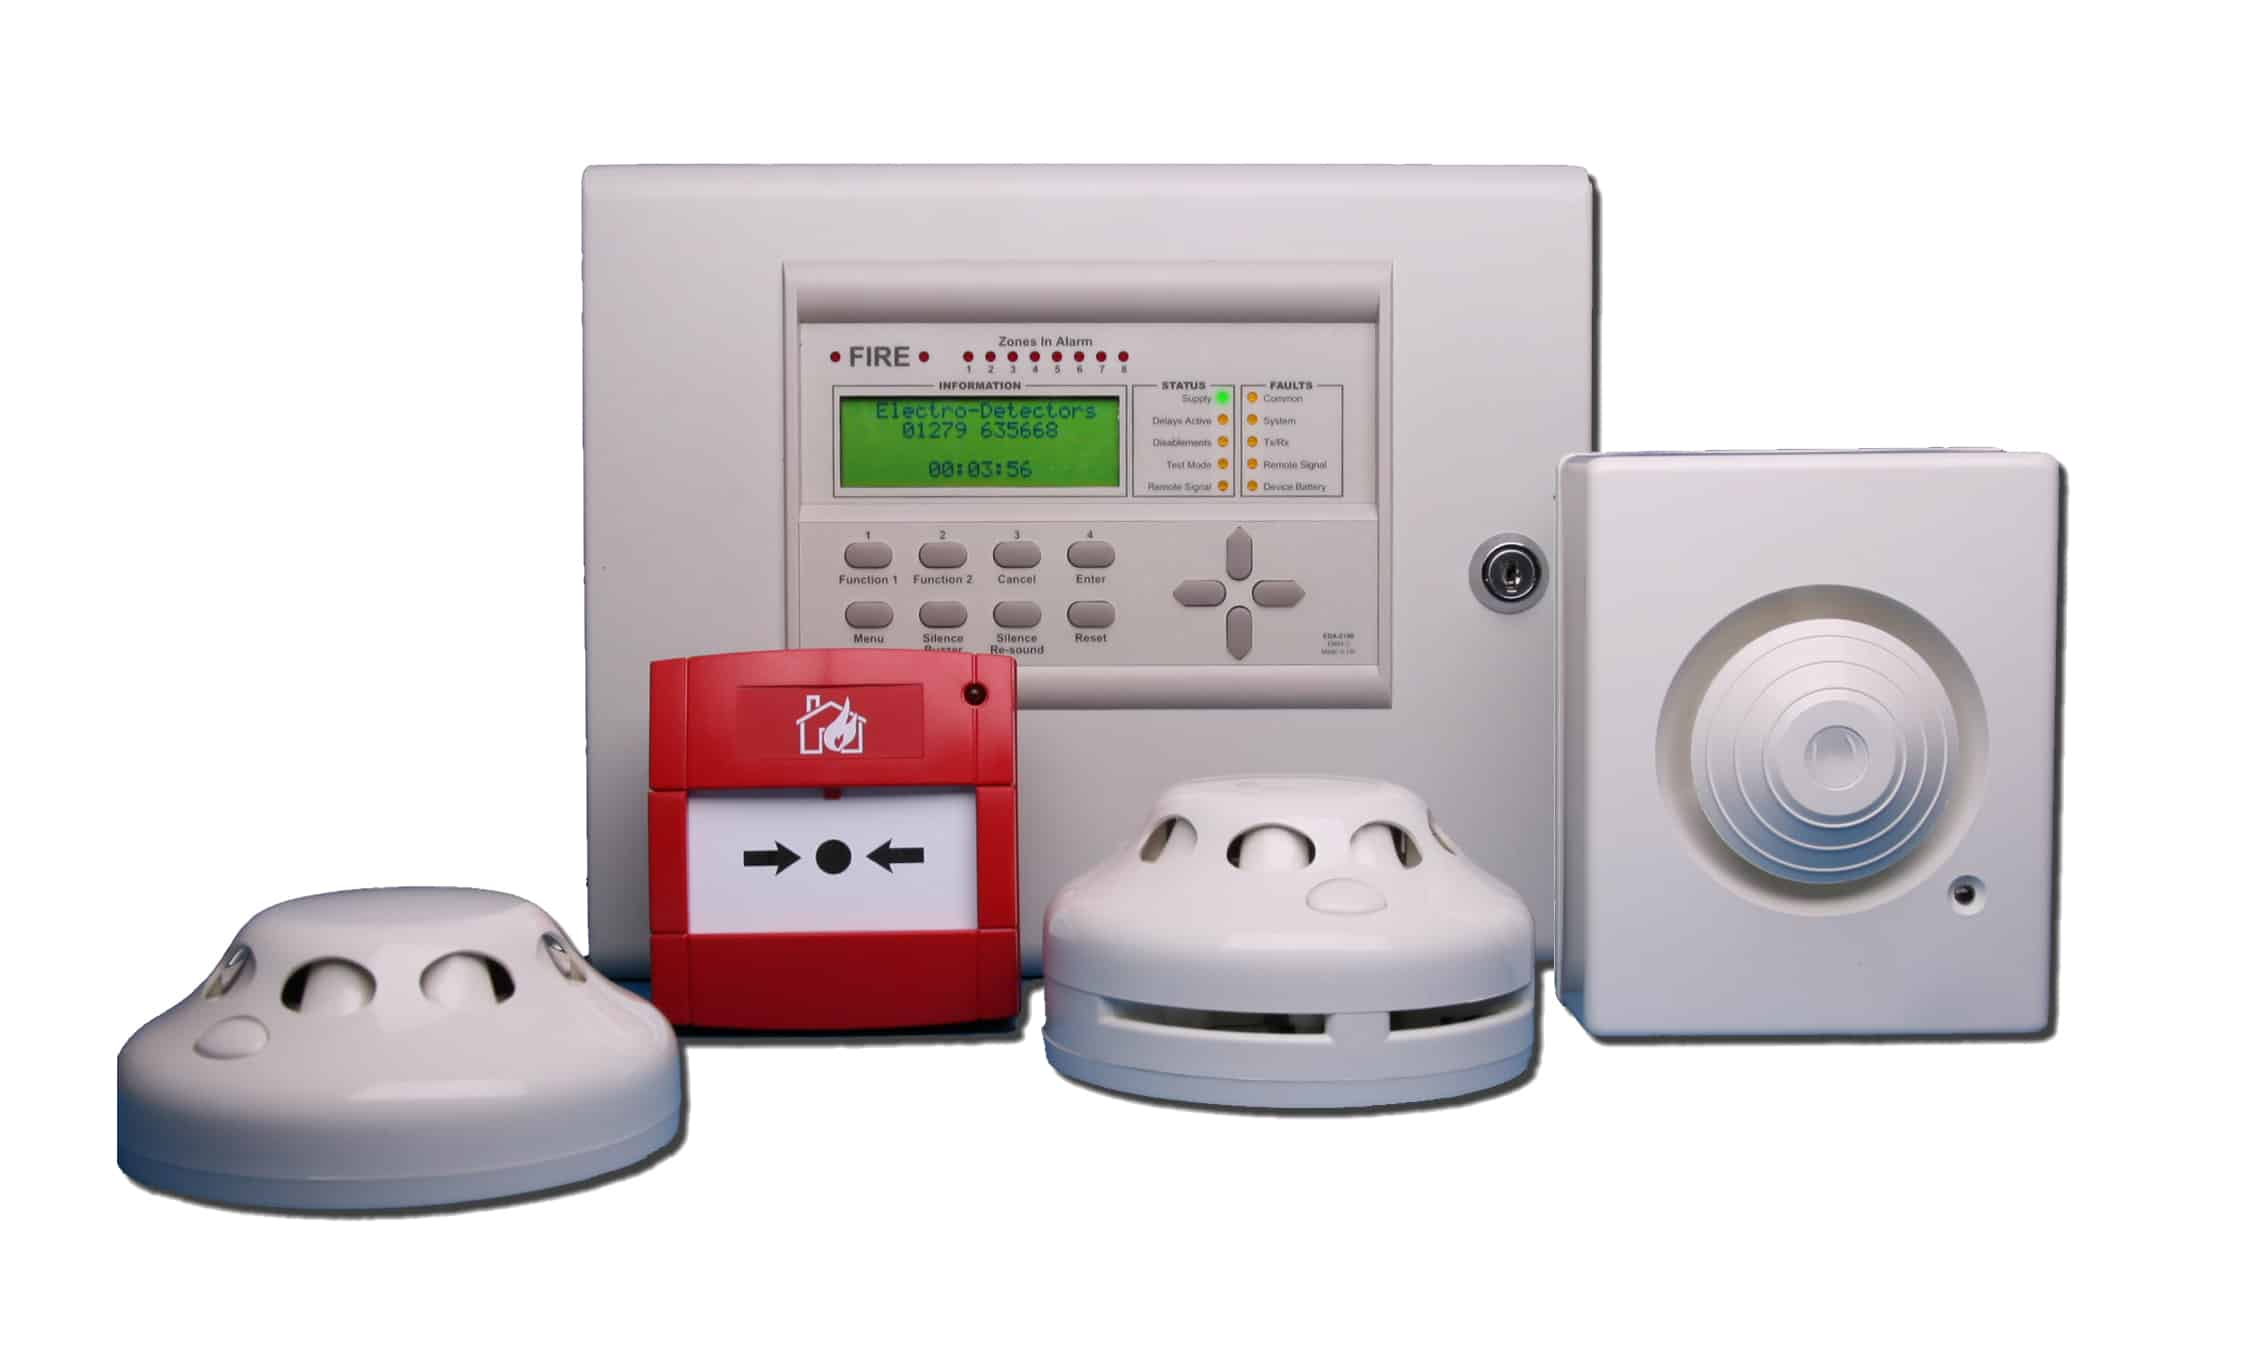 Fire Alarm Systems From Experts  Surrey, London, Southeast. Cortex Signs. Clipart Preschool Signs. Clinical Pathway Signs. Crop Circle Signs Of Stroke. Stuff Signs. Outdoor Wood Signs. Pilate Signs. Front Signs Of Stroke